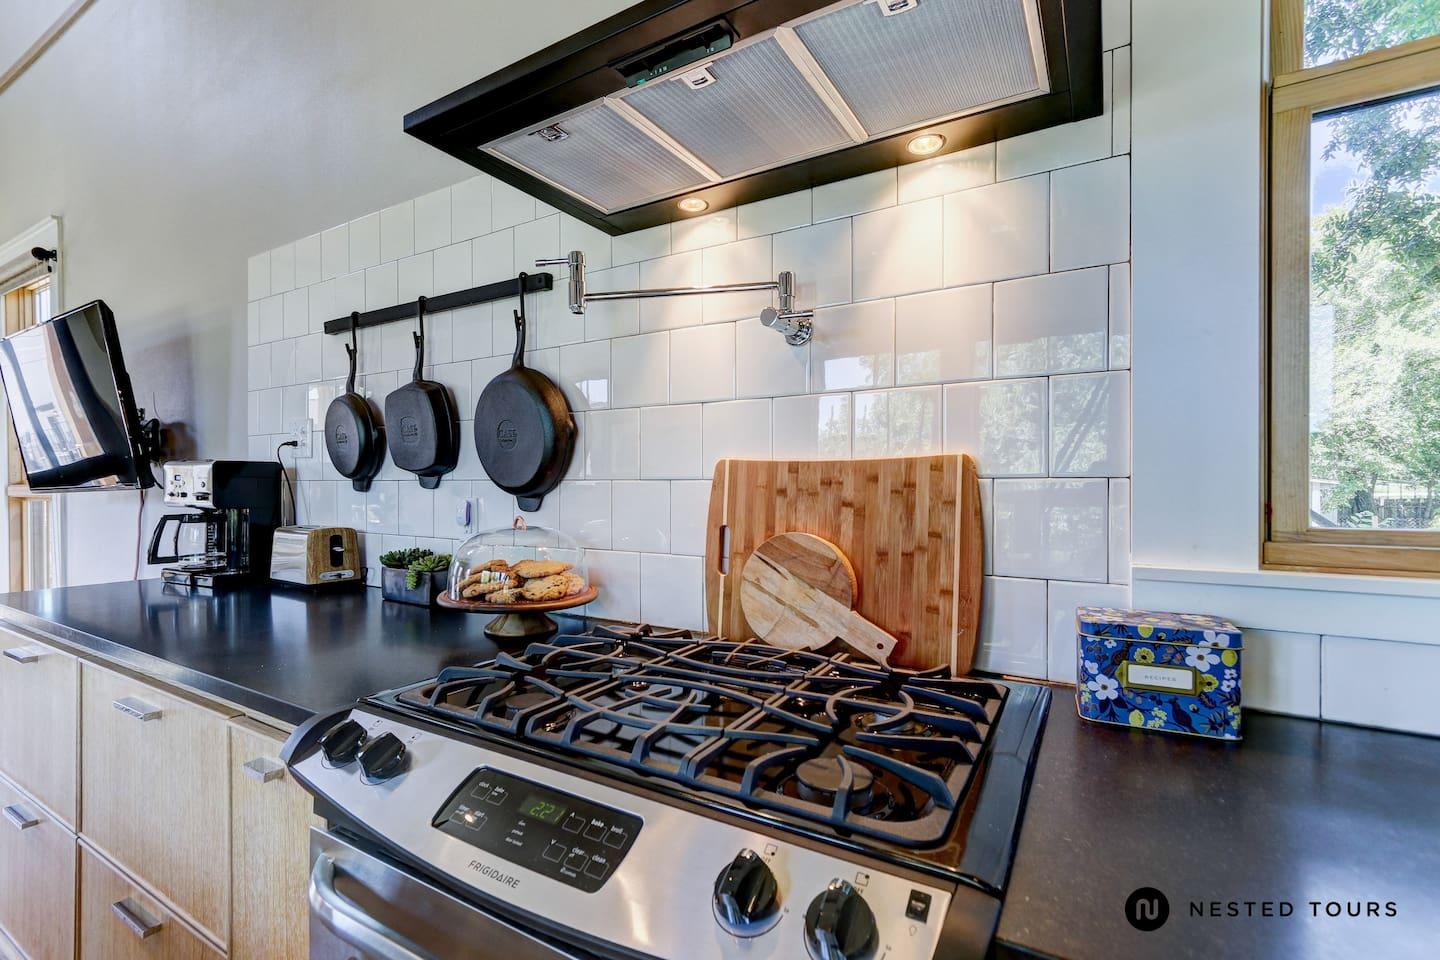 Waco has amazing restaurants.  However, if you want to eat in our spacious kitchen- we have all you will need!